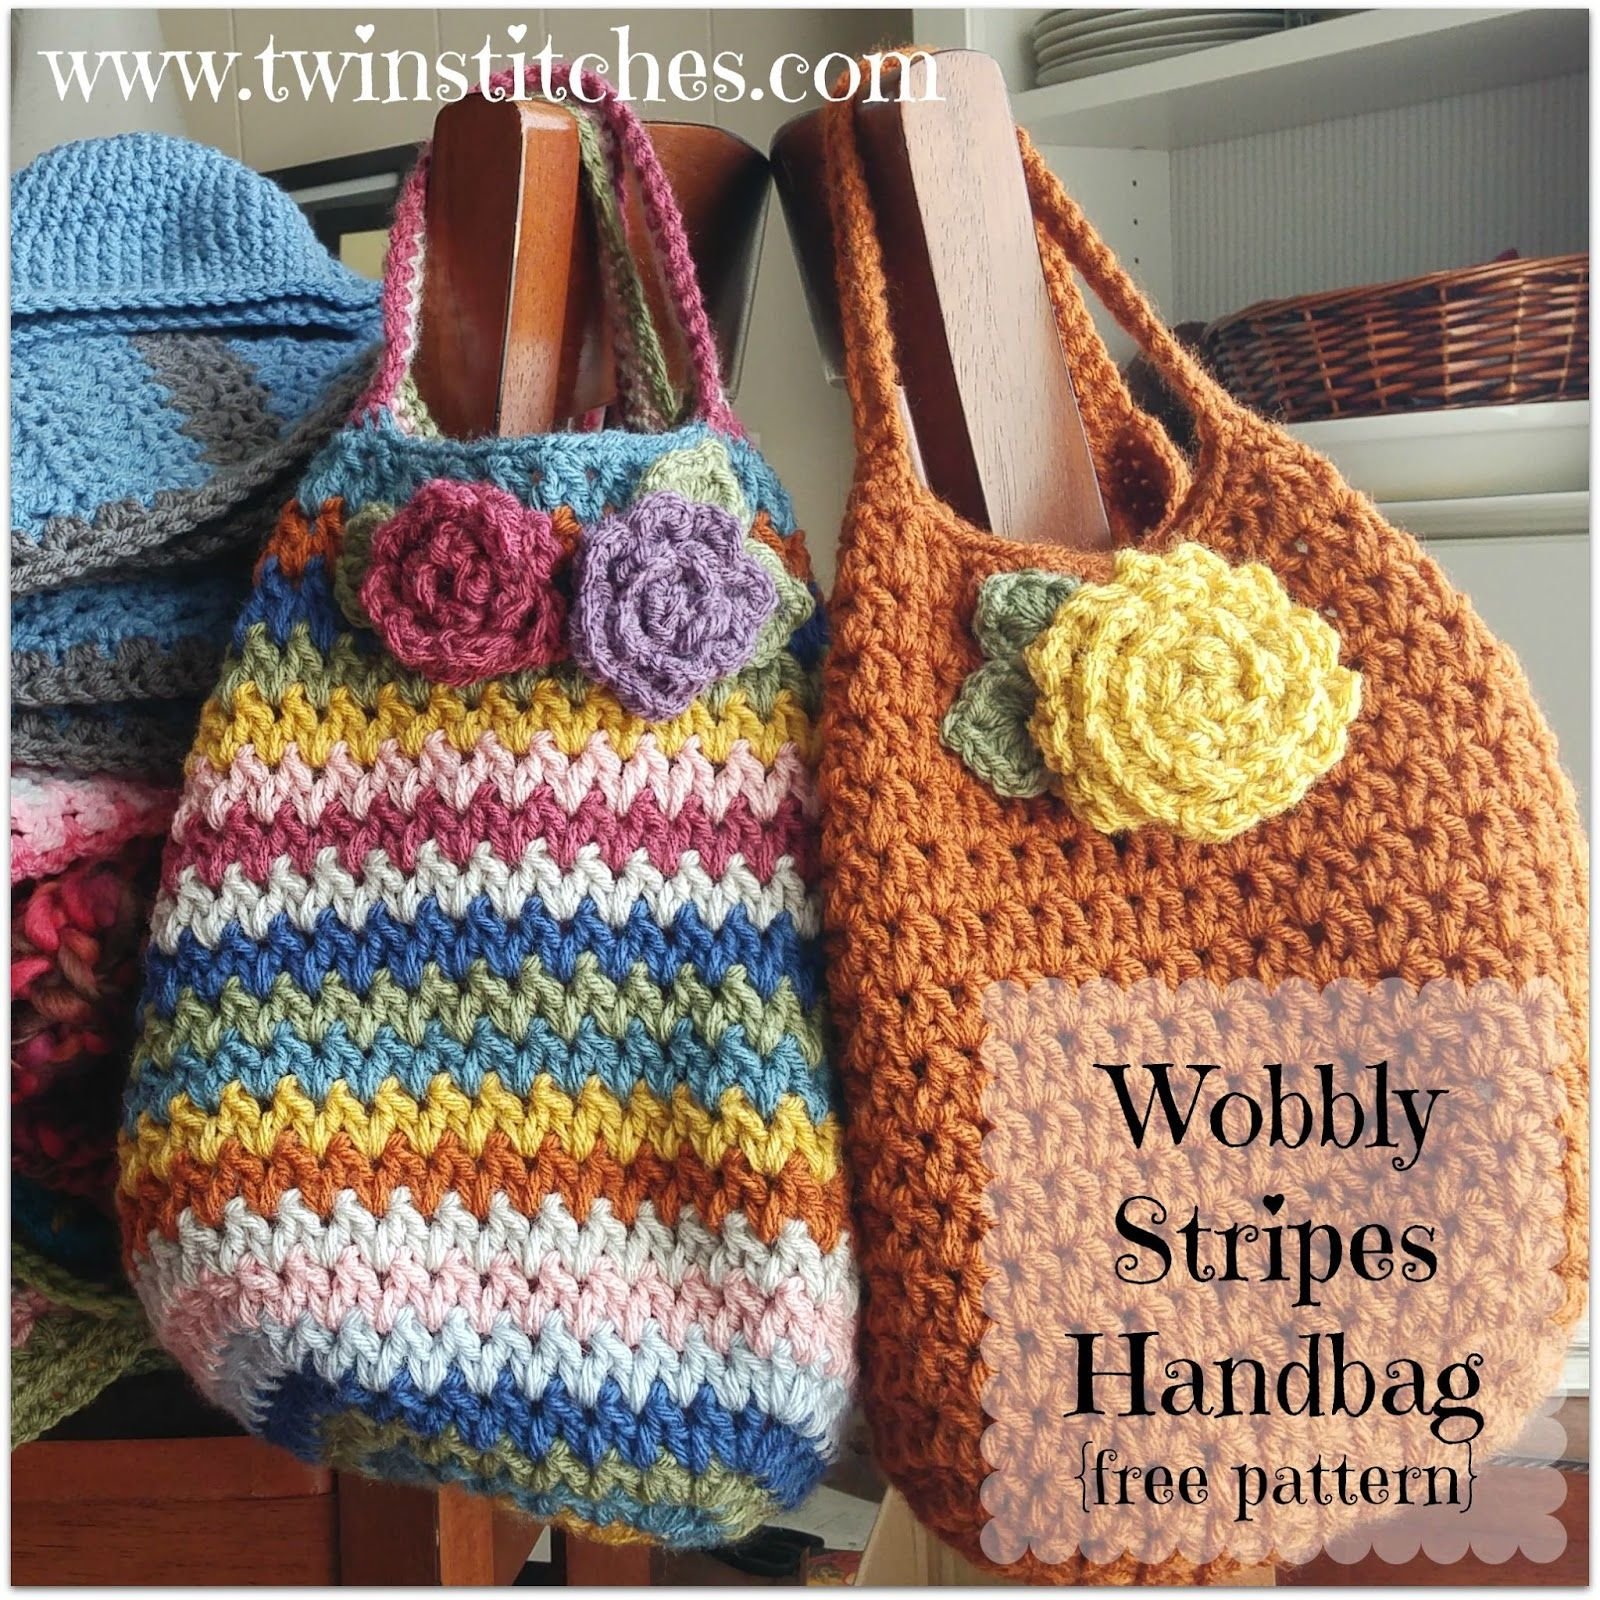 Tw-In Stitches: Wobbly Stripes Handbag - Free Pattern | Tw-In ...